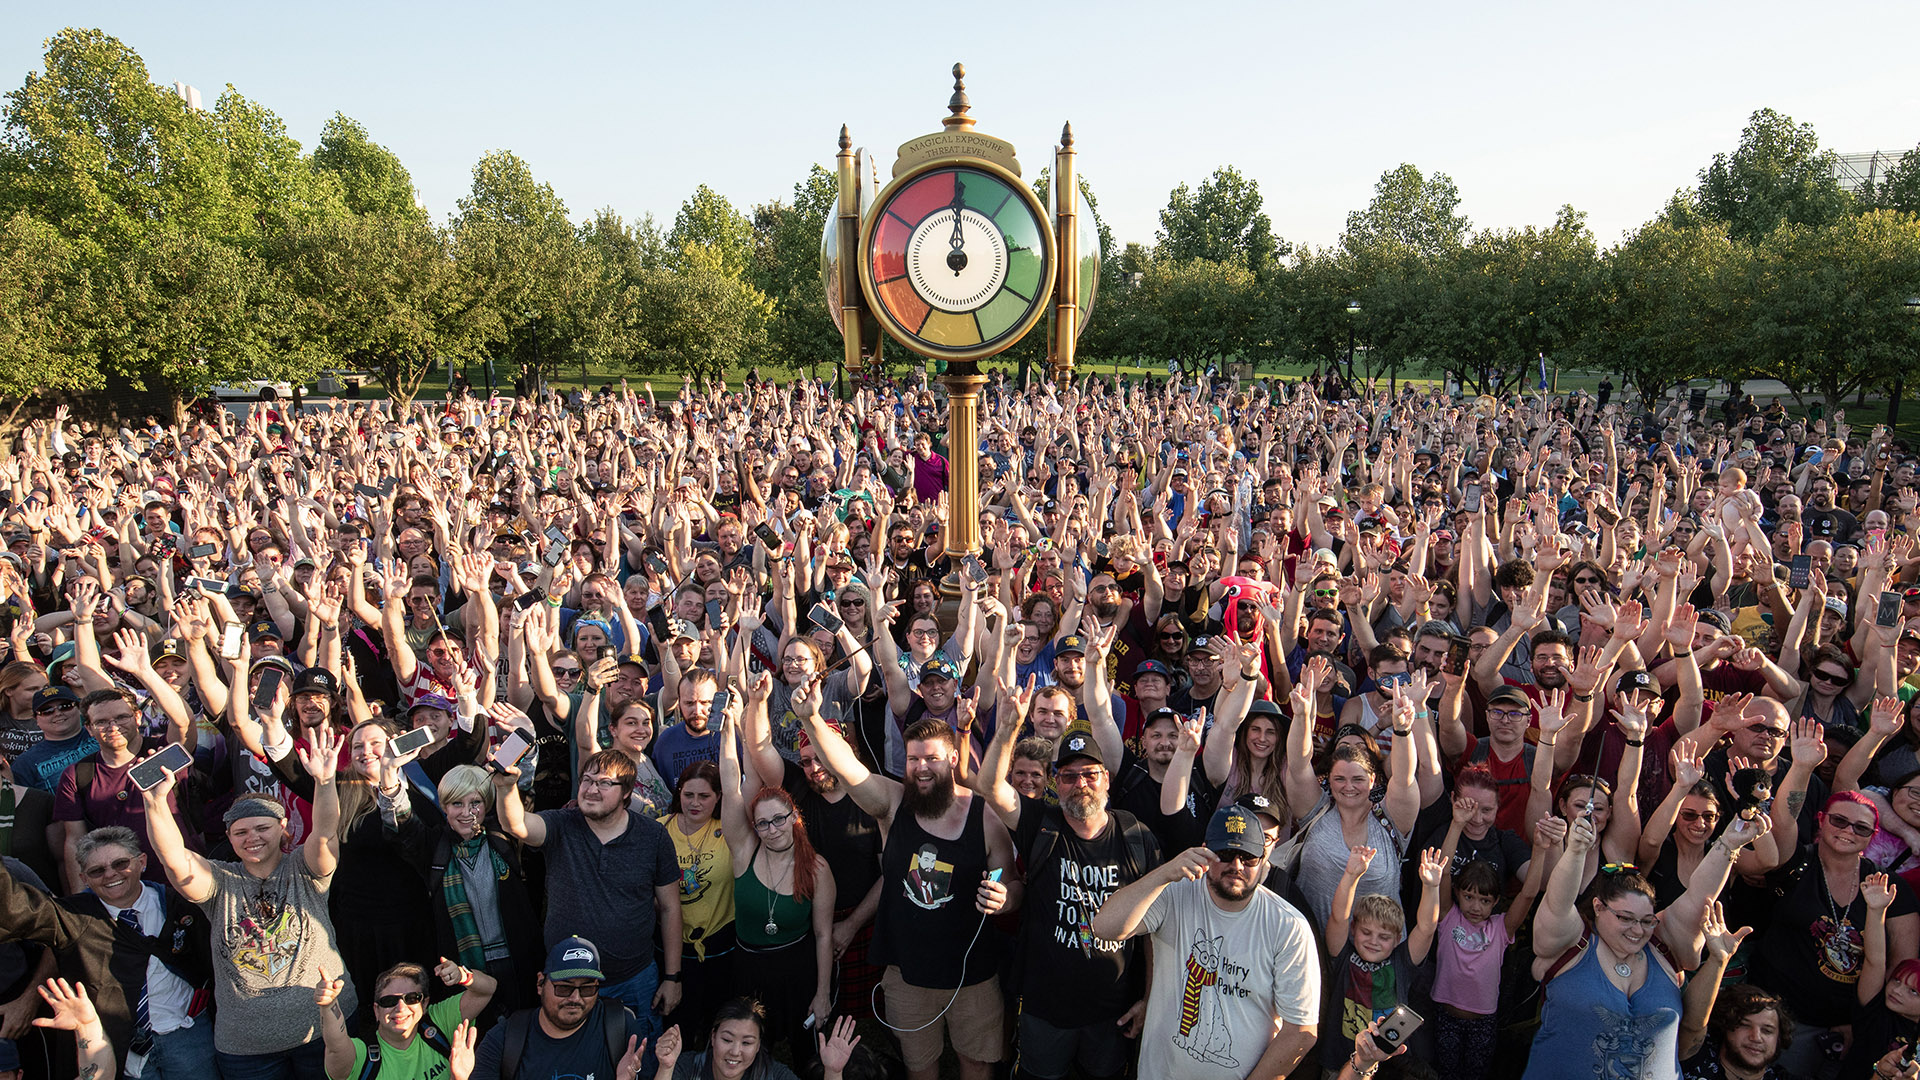 """Attendees of the """"Harry Potter: Wizards Unite"""" Fan Festival pose for a group photo around the life-sized Threat Clock."""